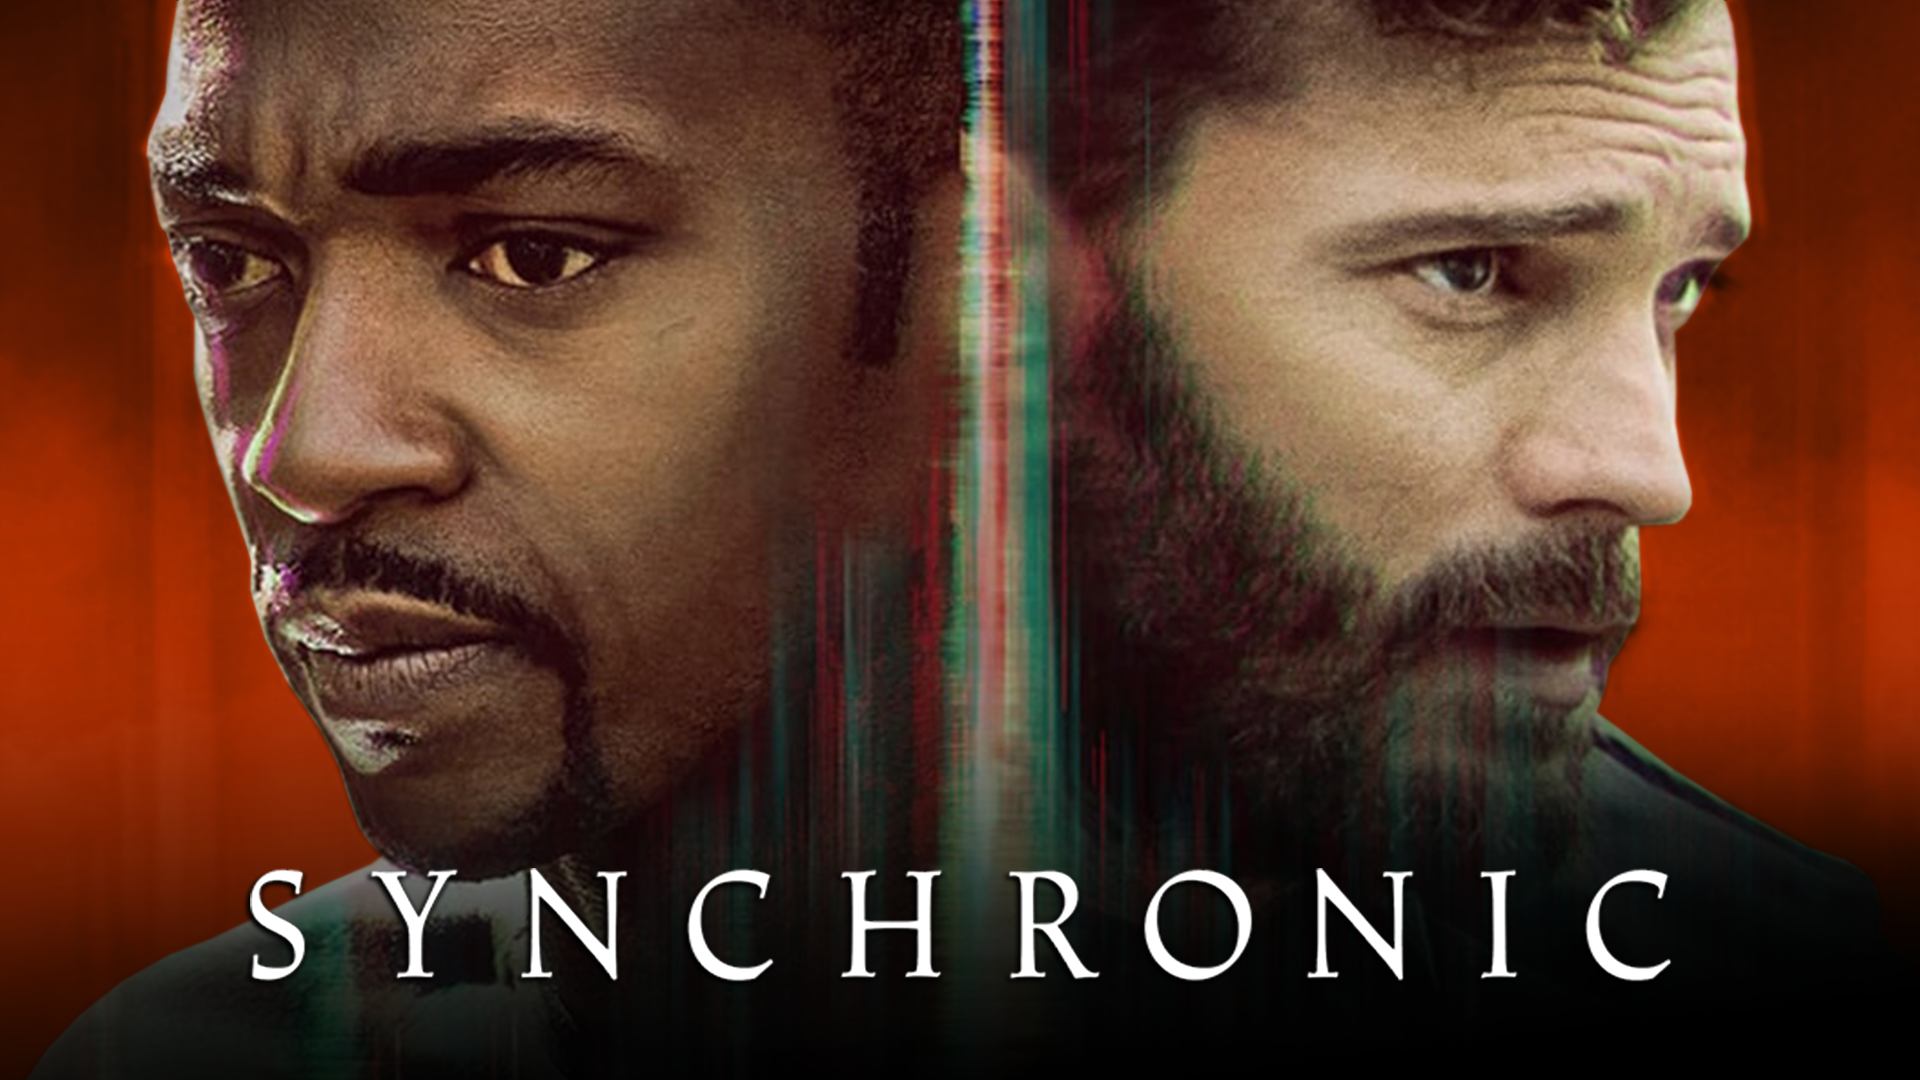 Synchronic turns time travel into a heady, atmospheric trip